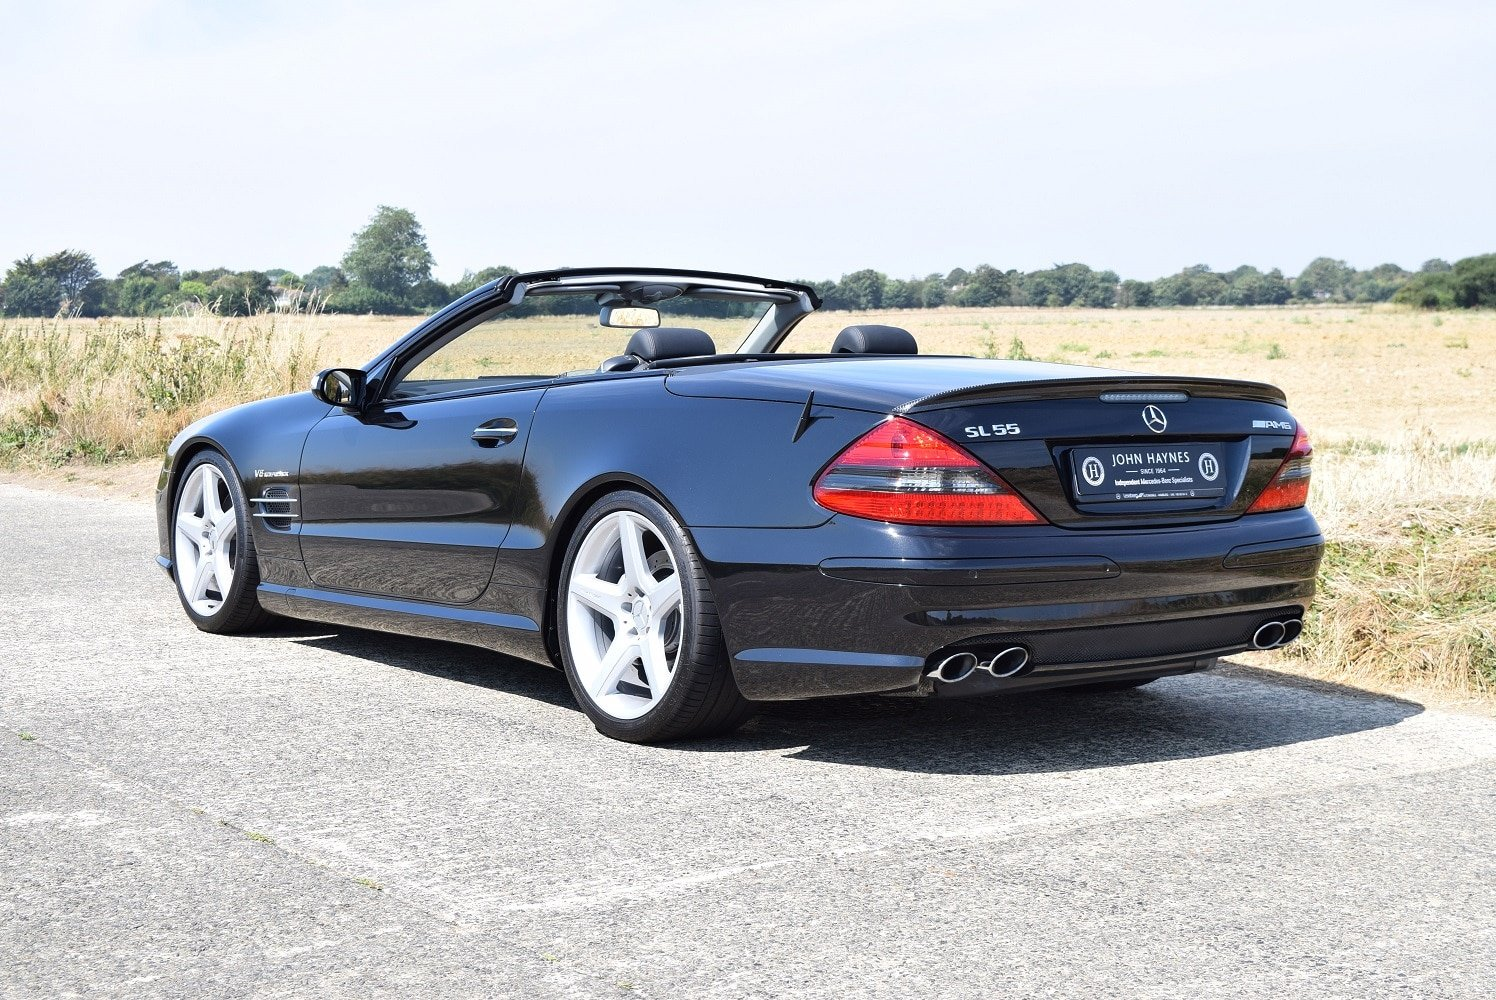 2006 Mercedes Benz SL55 AMG For Sale (picture 3 of 6)